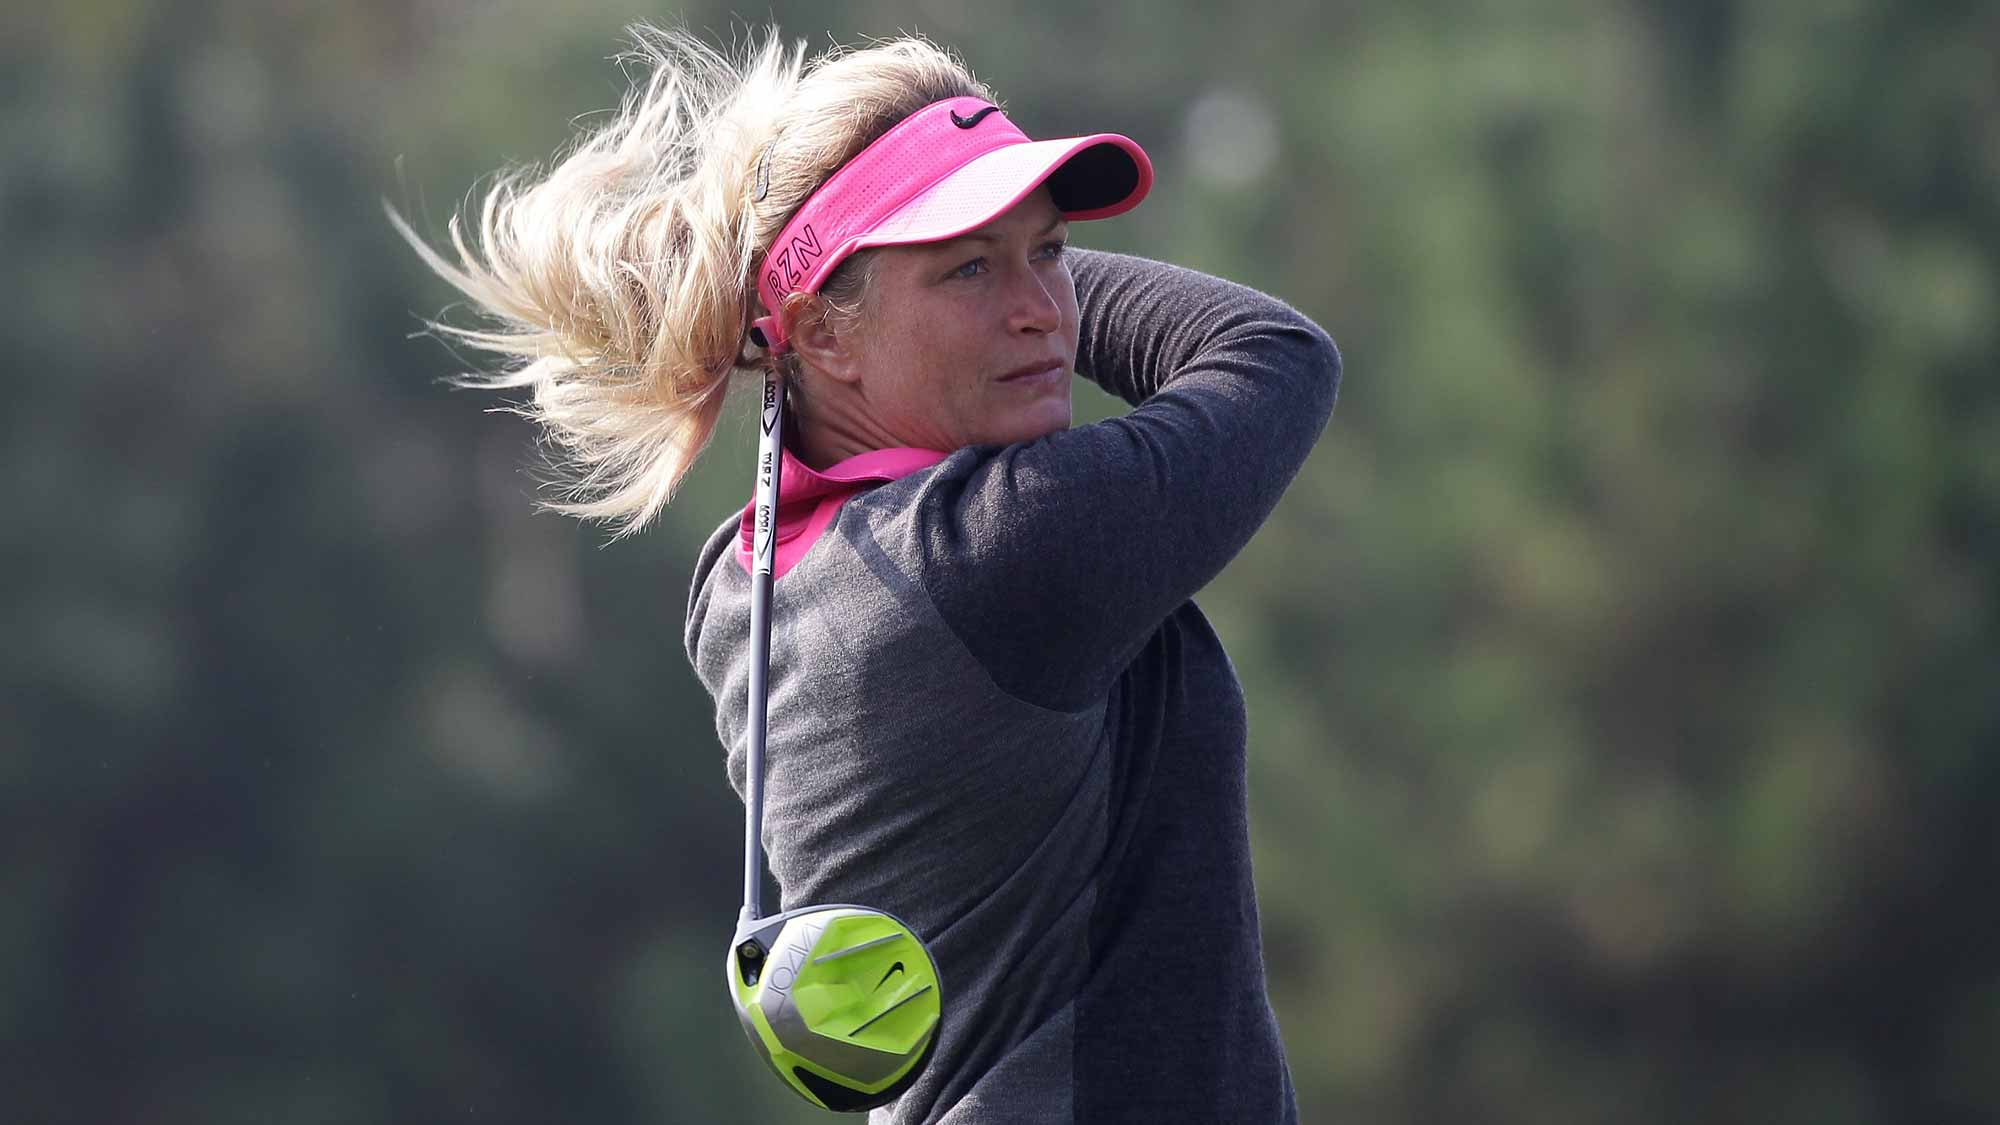 Suzann Pettersen of Norway plays a tee shot on the 2nd hole during round four of the LPGA KEB Hana Bank